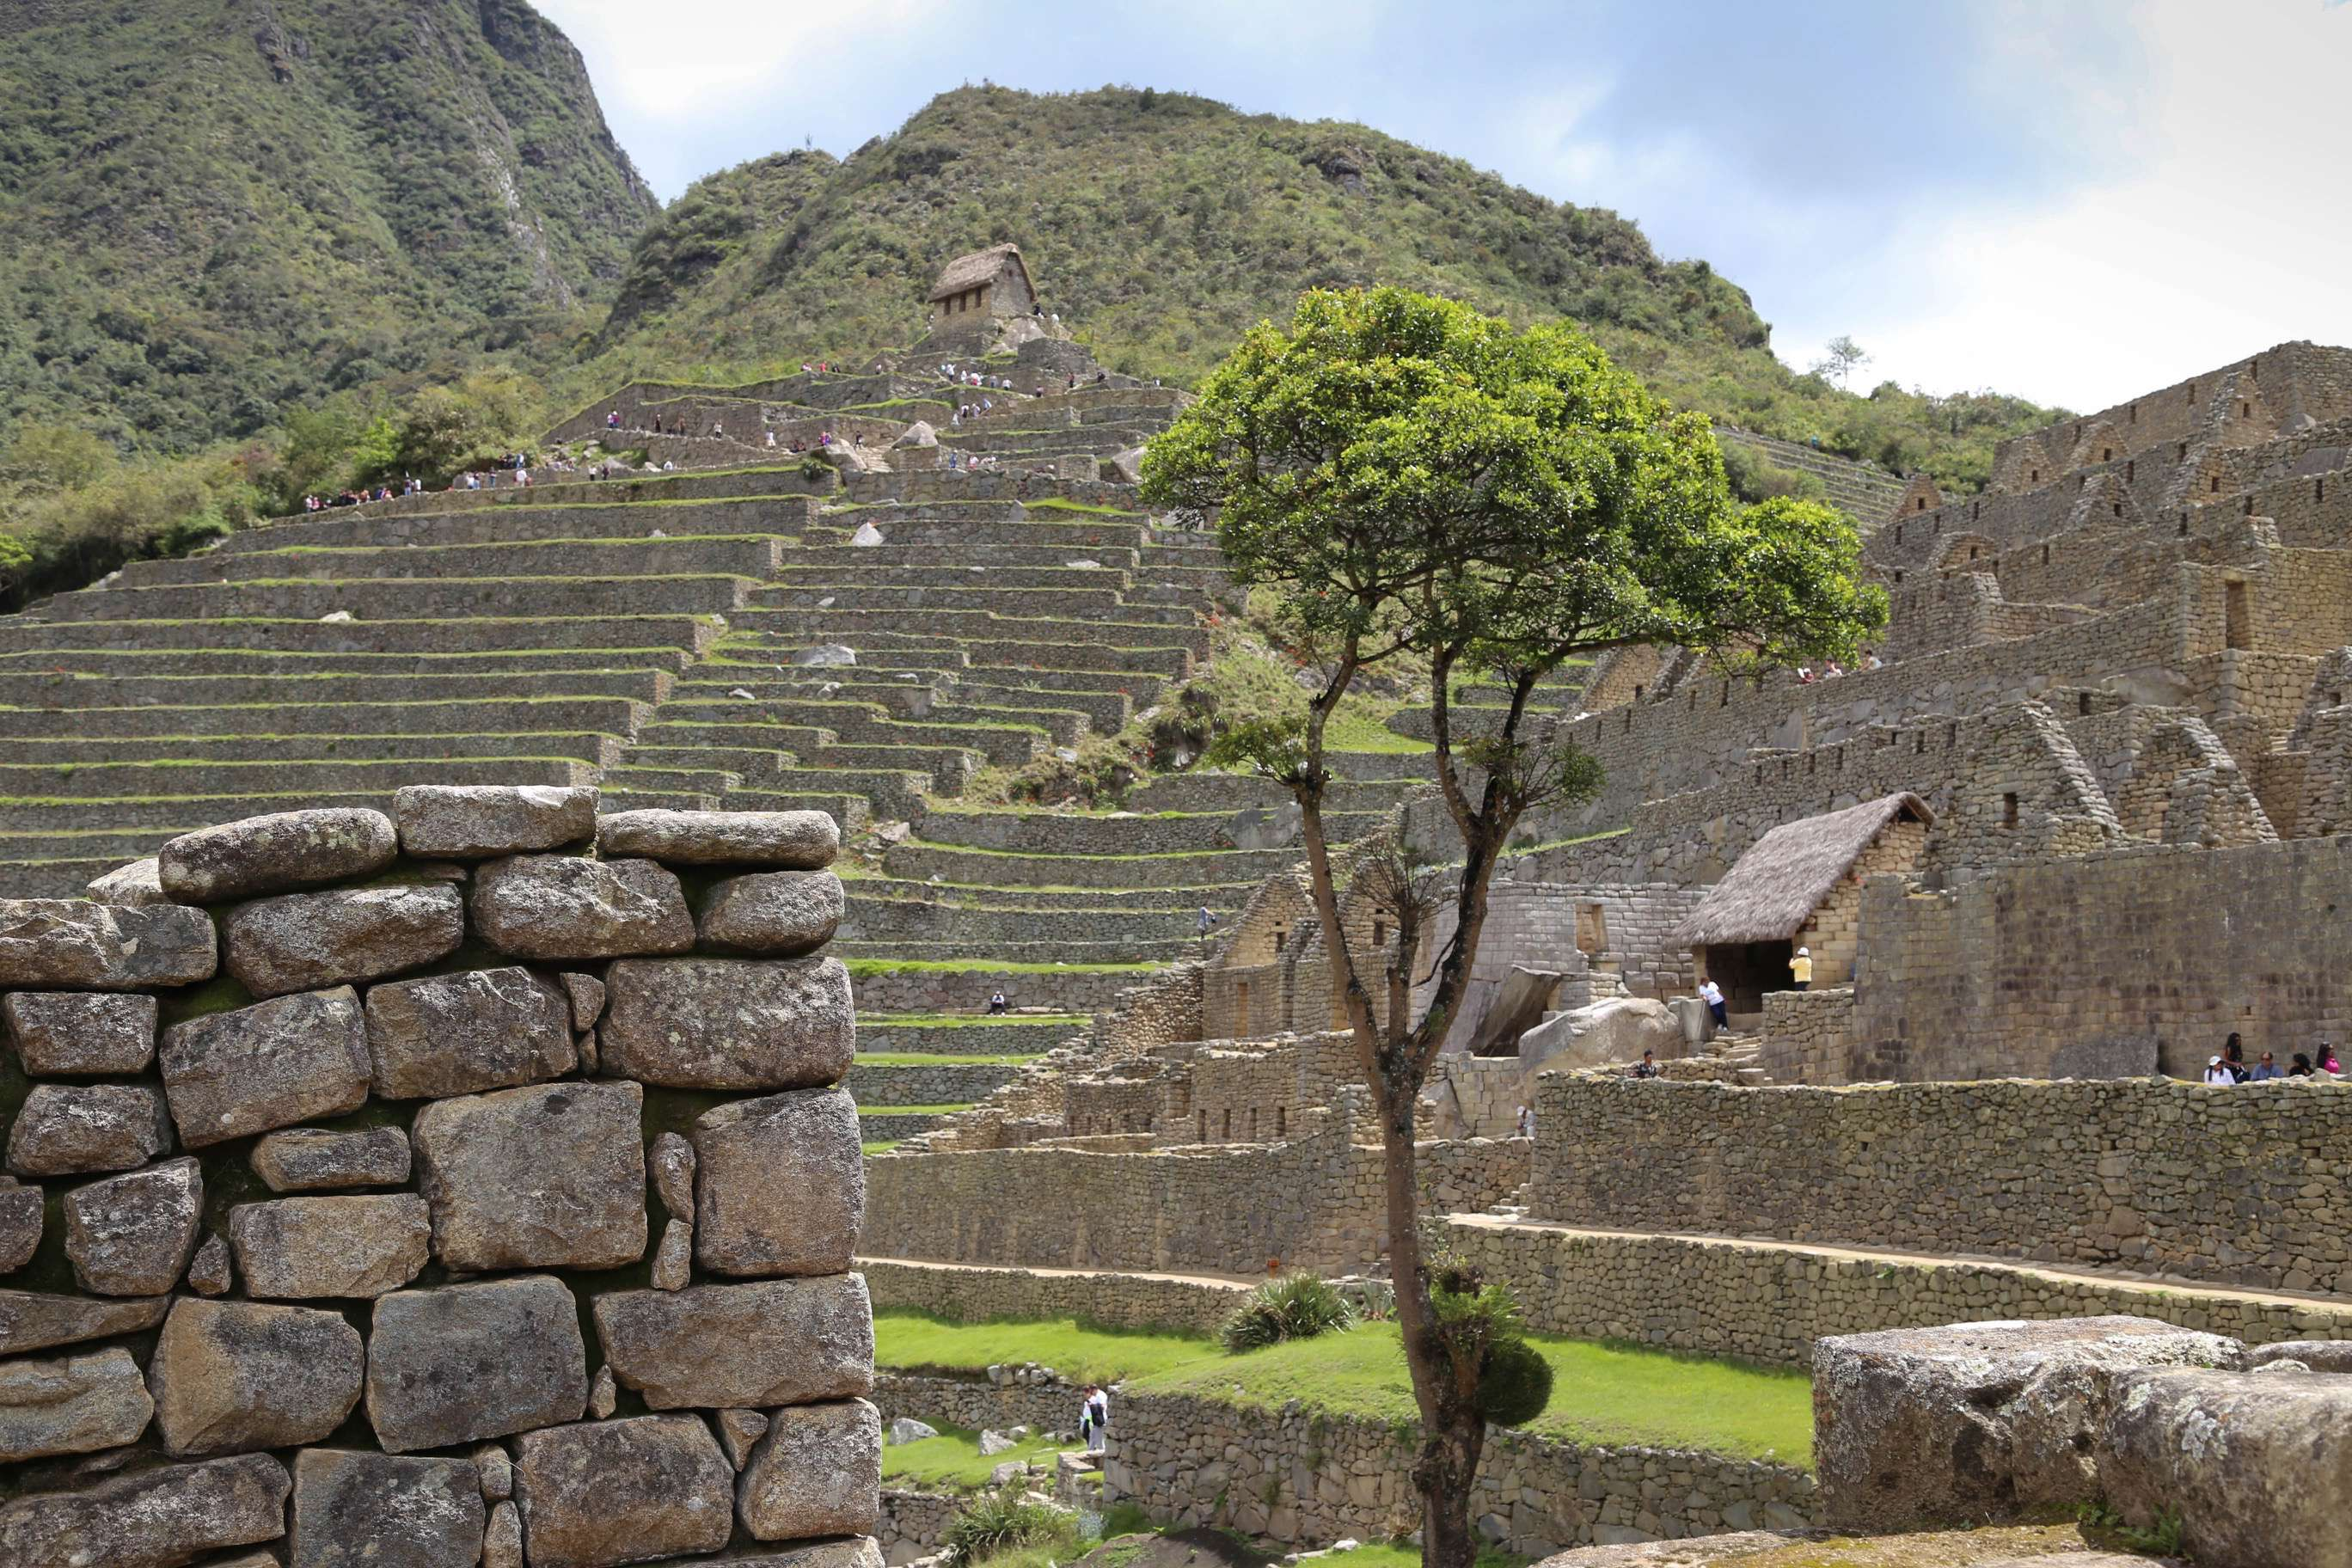 For a number of excellent reasons Machu Picchu has been designated a UNESCO World Heritage Site.